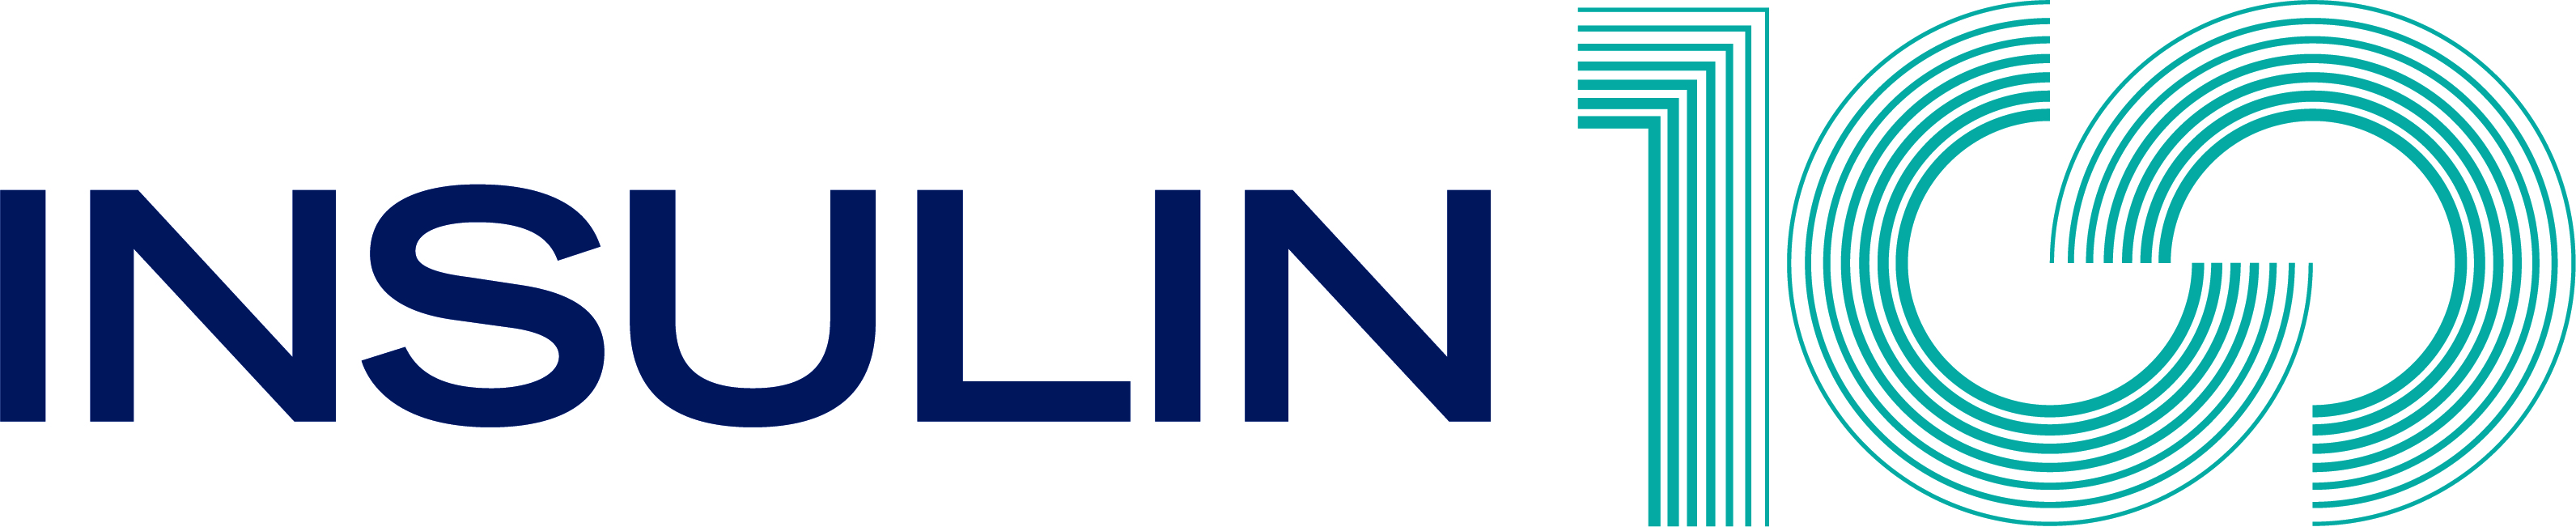 insulin100logo